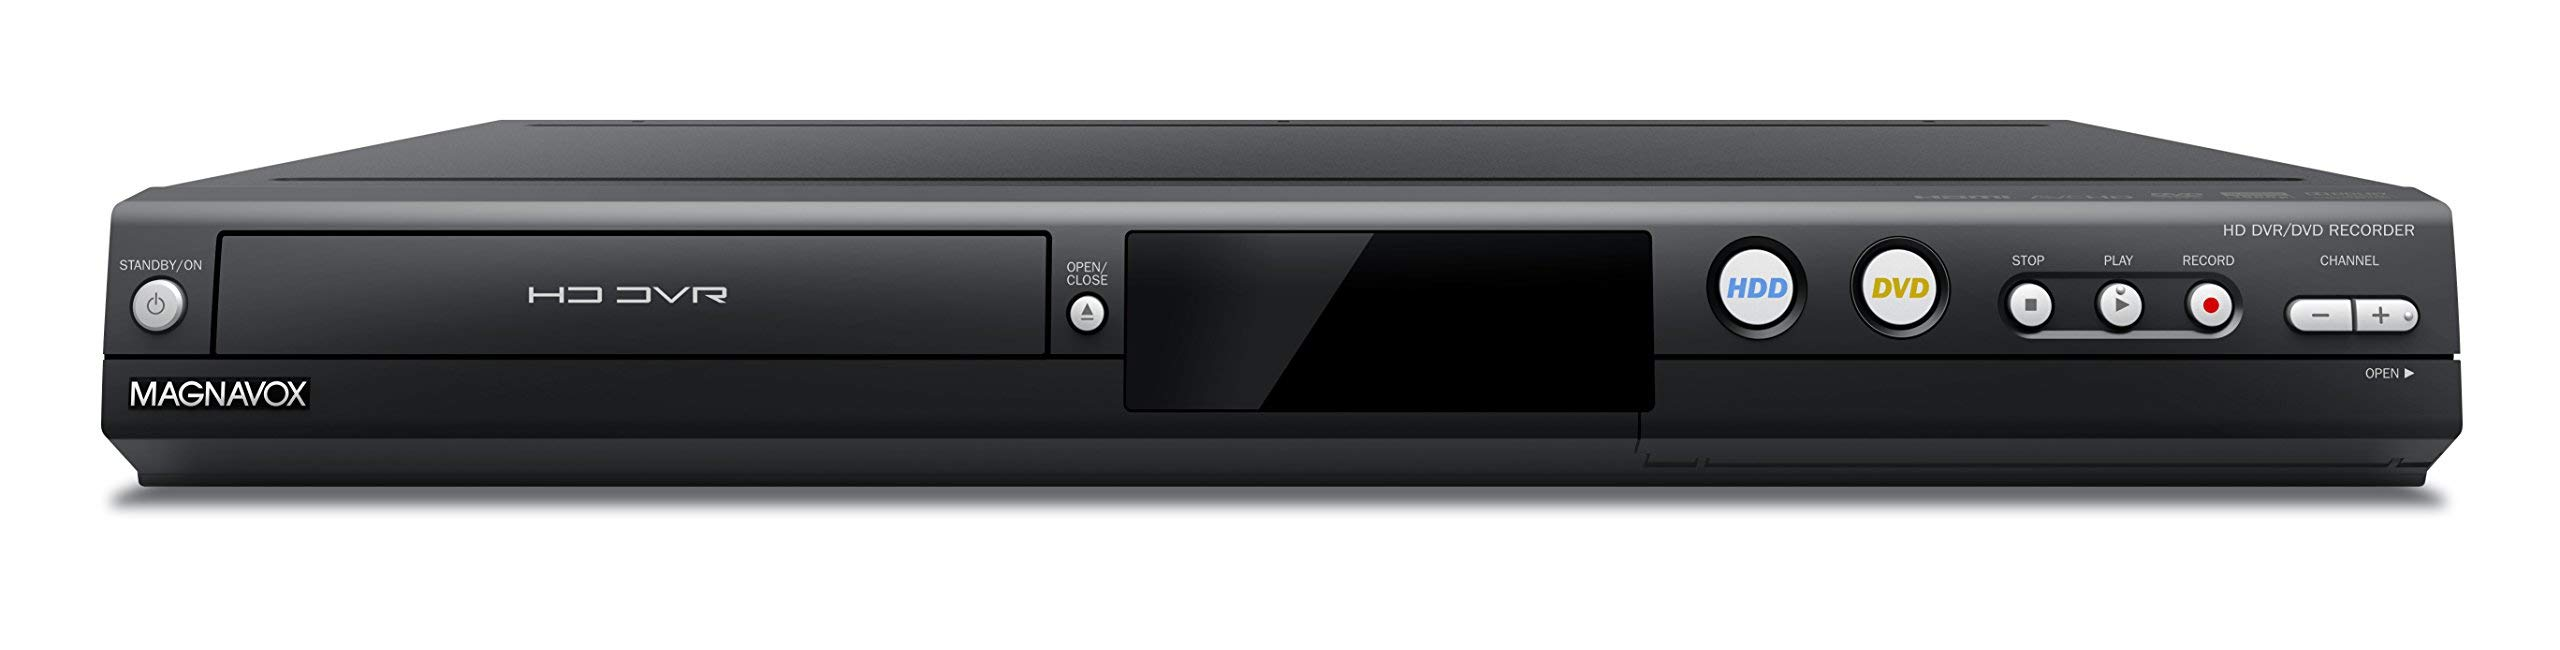 Magnavox MDR865H HD DVR/DVD Recorder with Digital Tuner (Black) (Renewed) by Magnavox